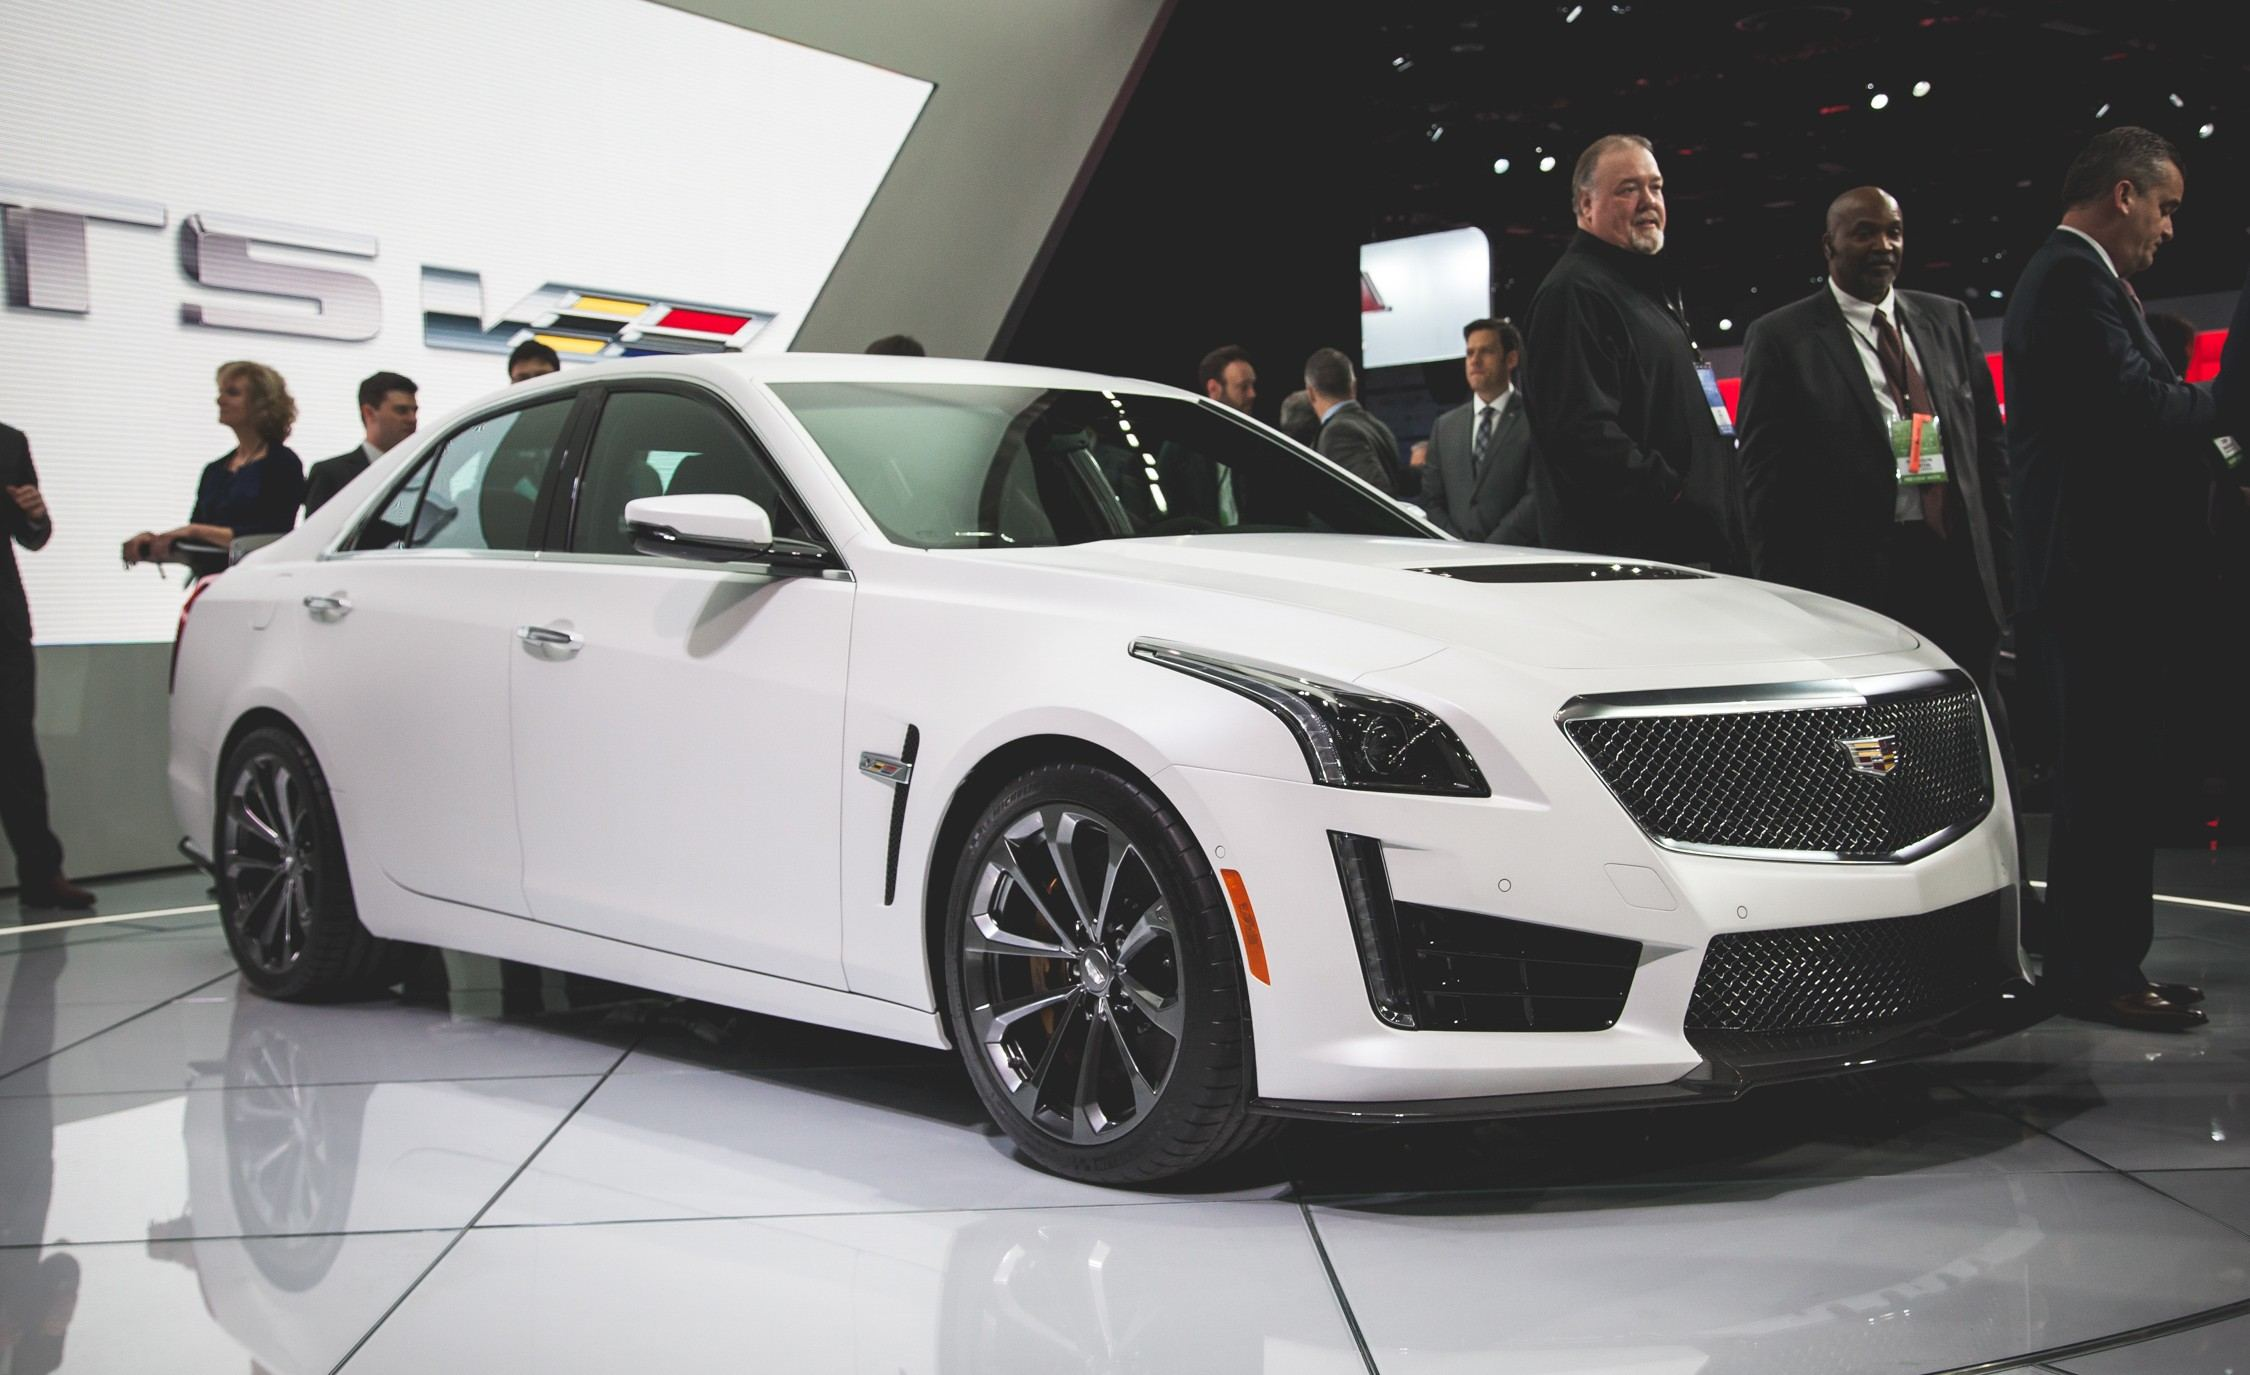 Image with 2016 Cadillac CTS